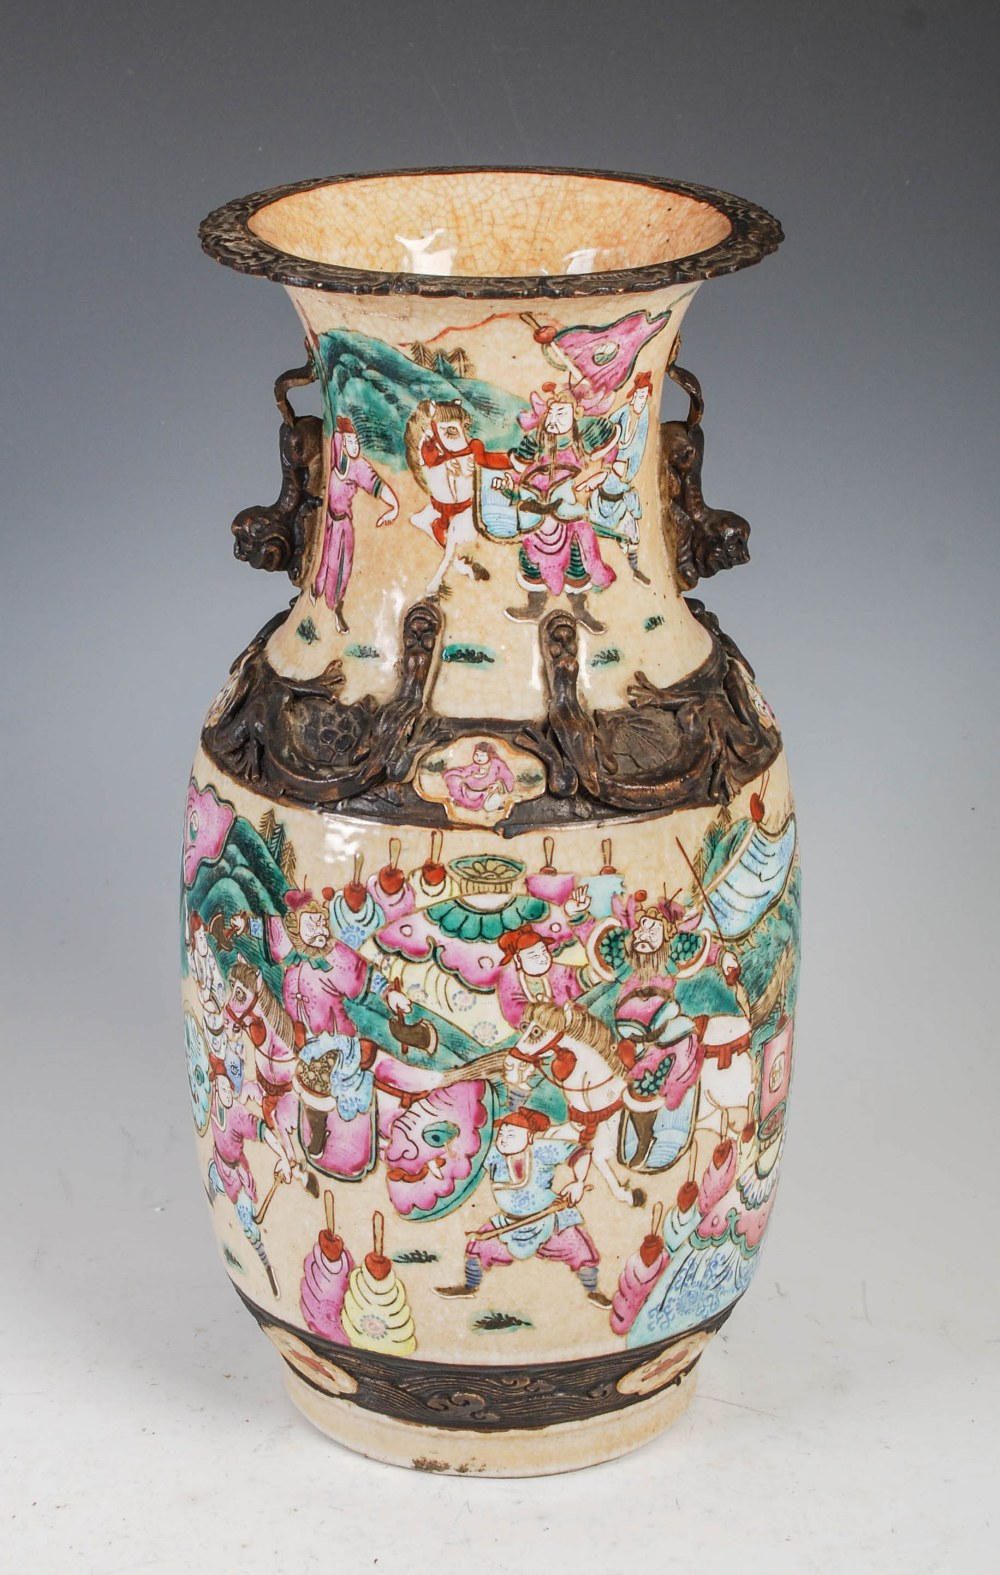 A Chinese porcelain crackle glazed famille rose vase, Qing Dynasty, decorated with warriors, incised